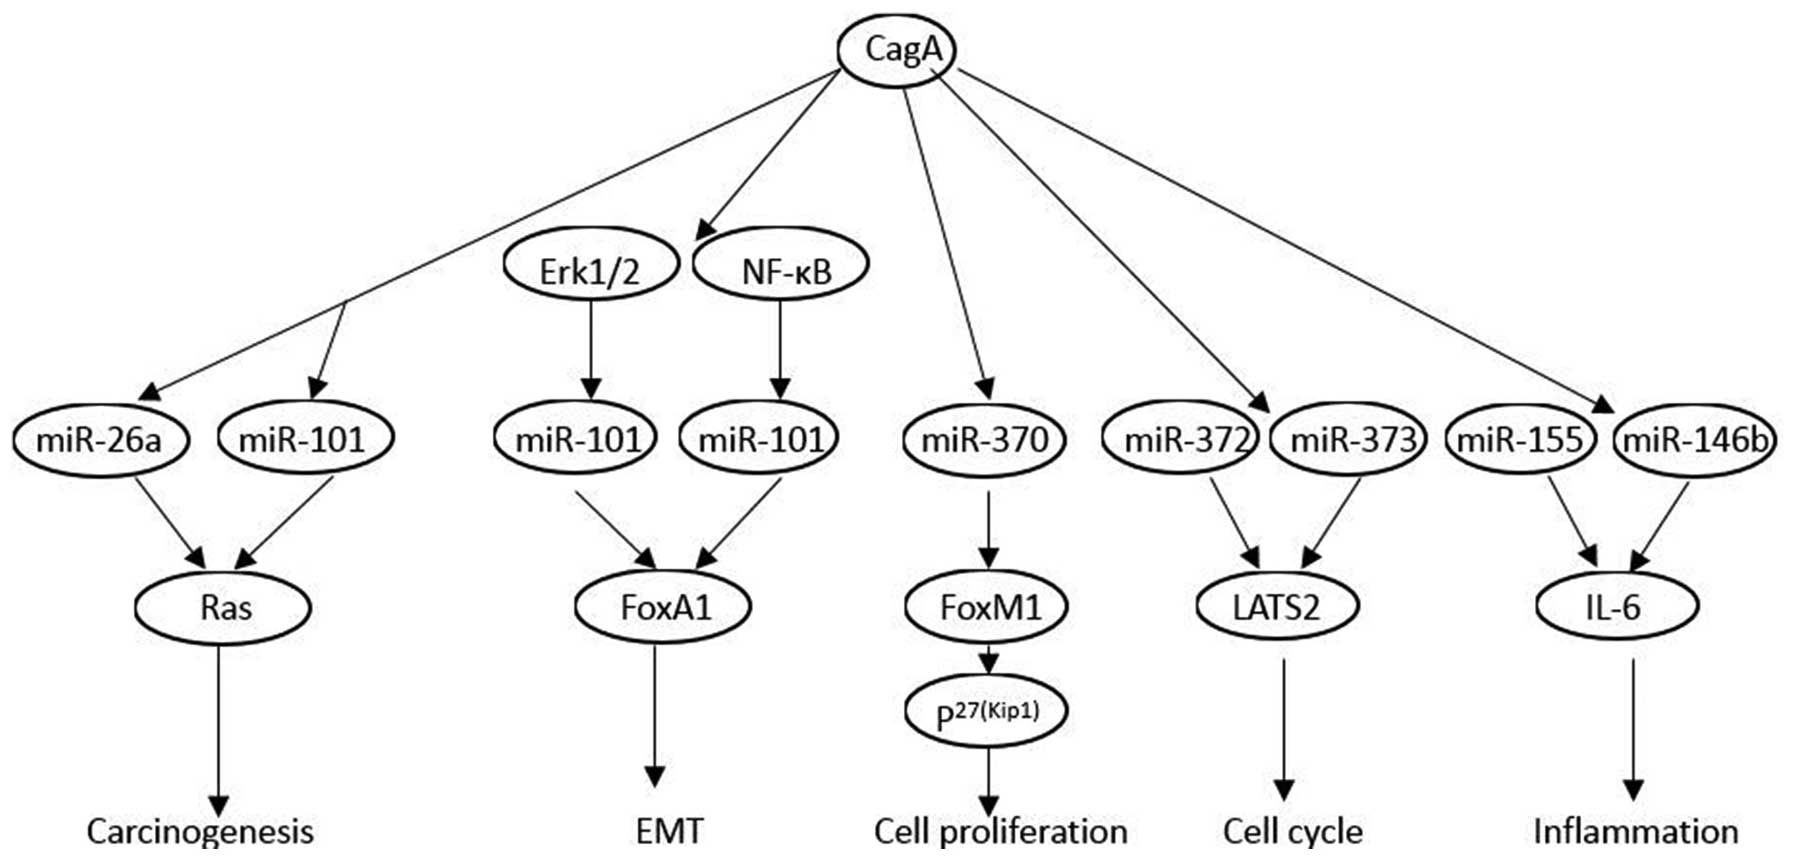 Pathogenic Mechanisms Of The Oncoprotein Caga In H Pylori